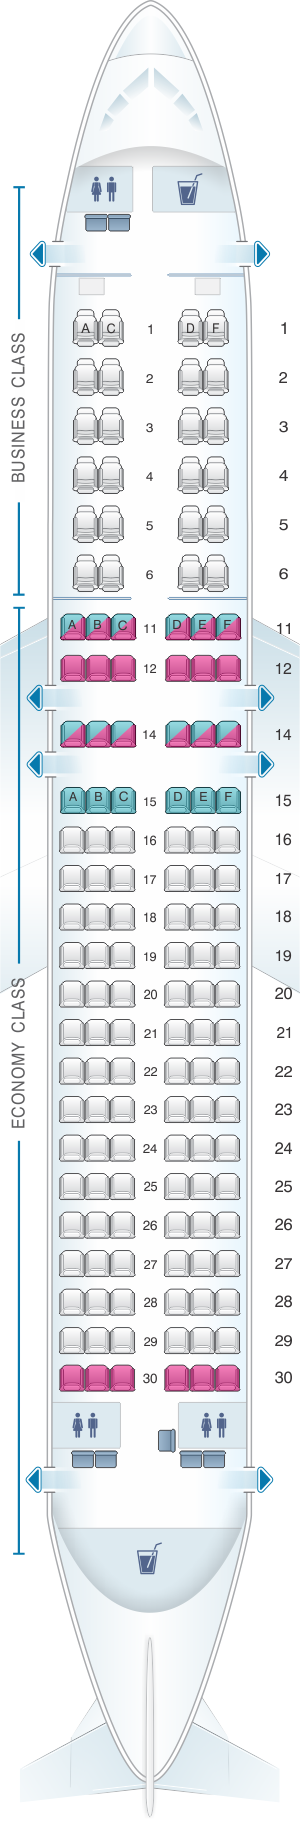 Seat map for South African Airways Airbus A320 200